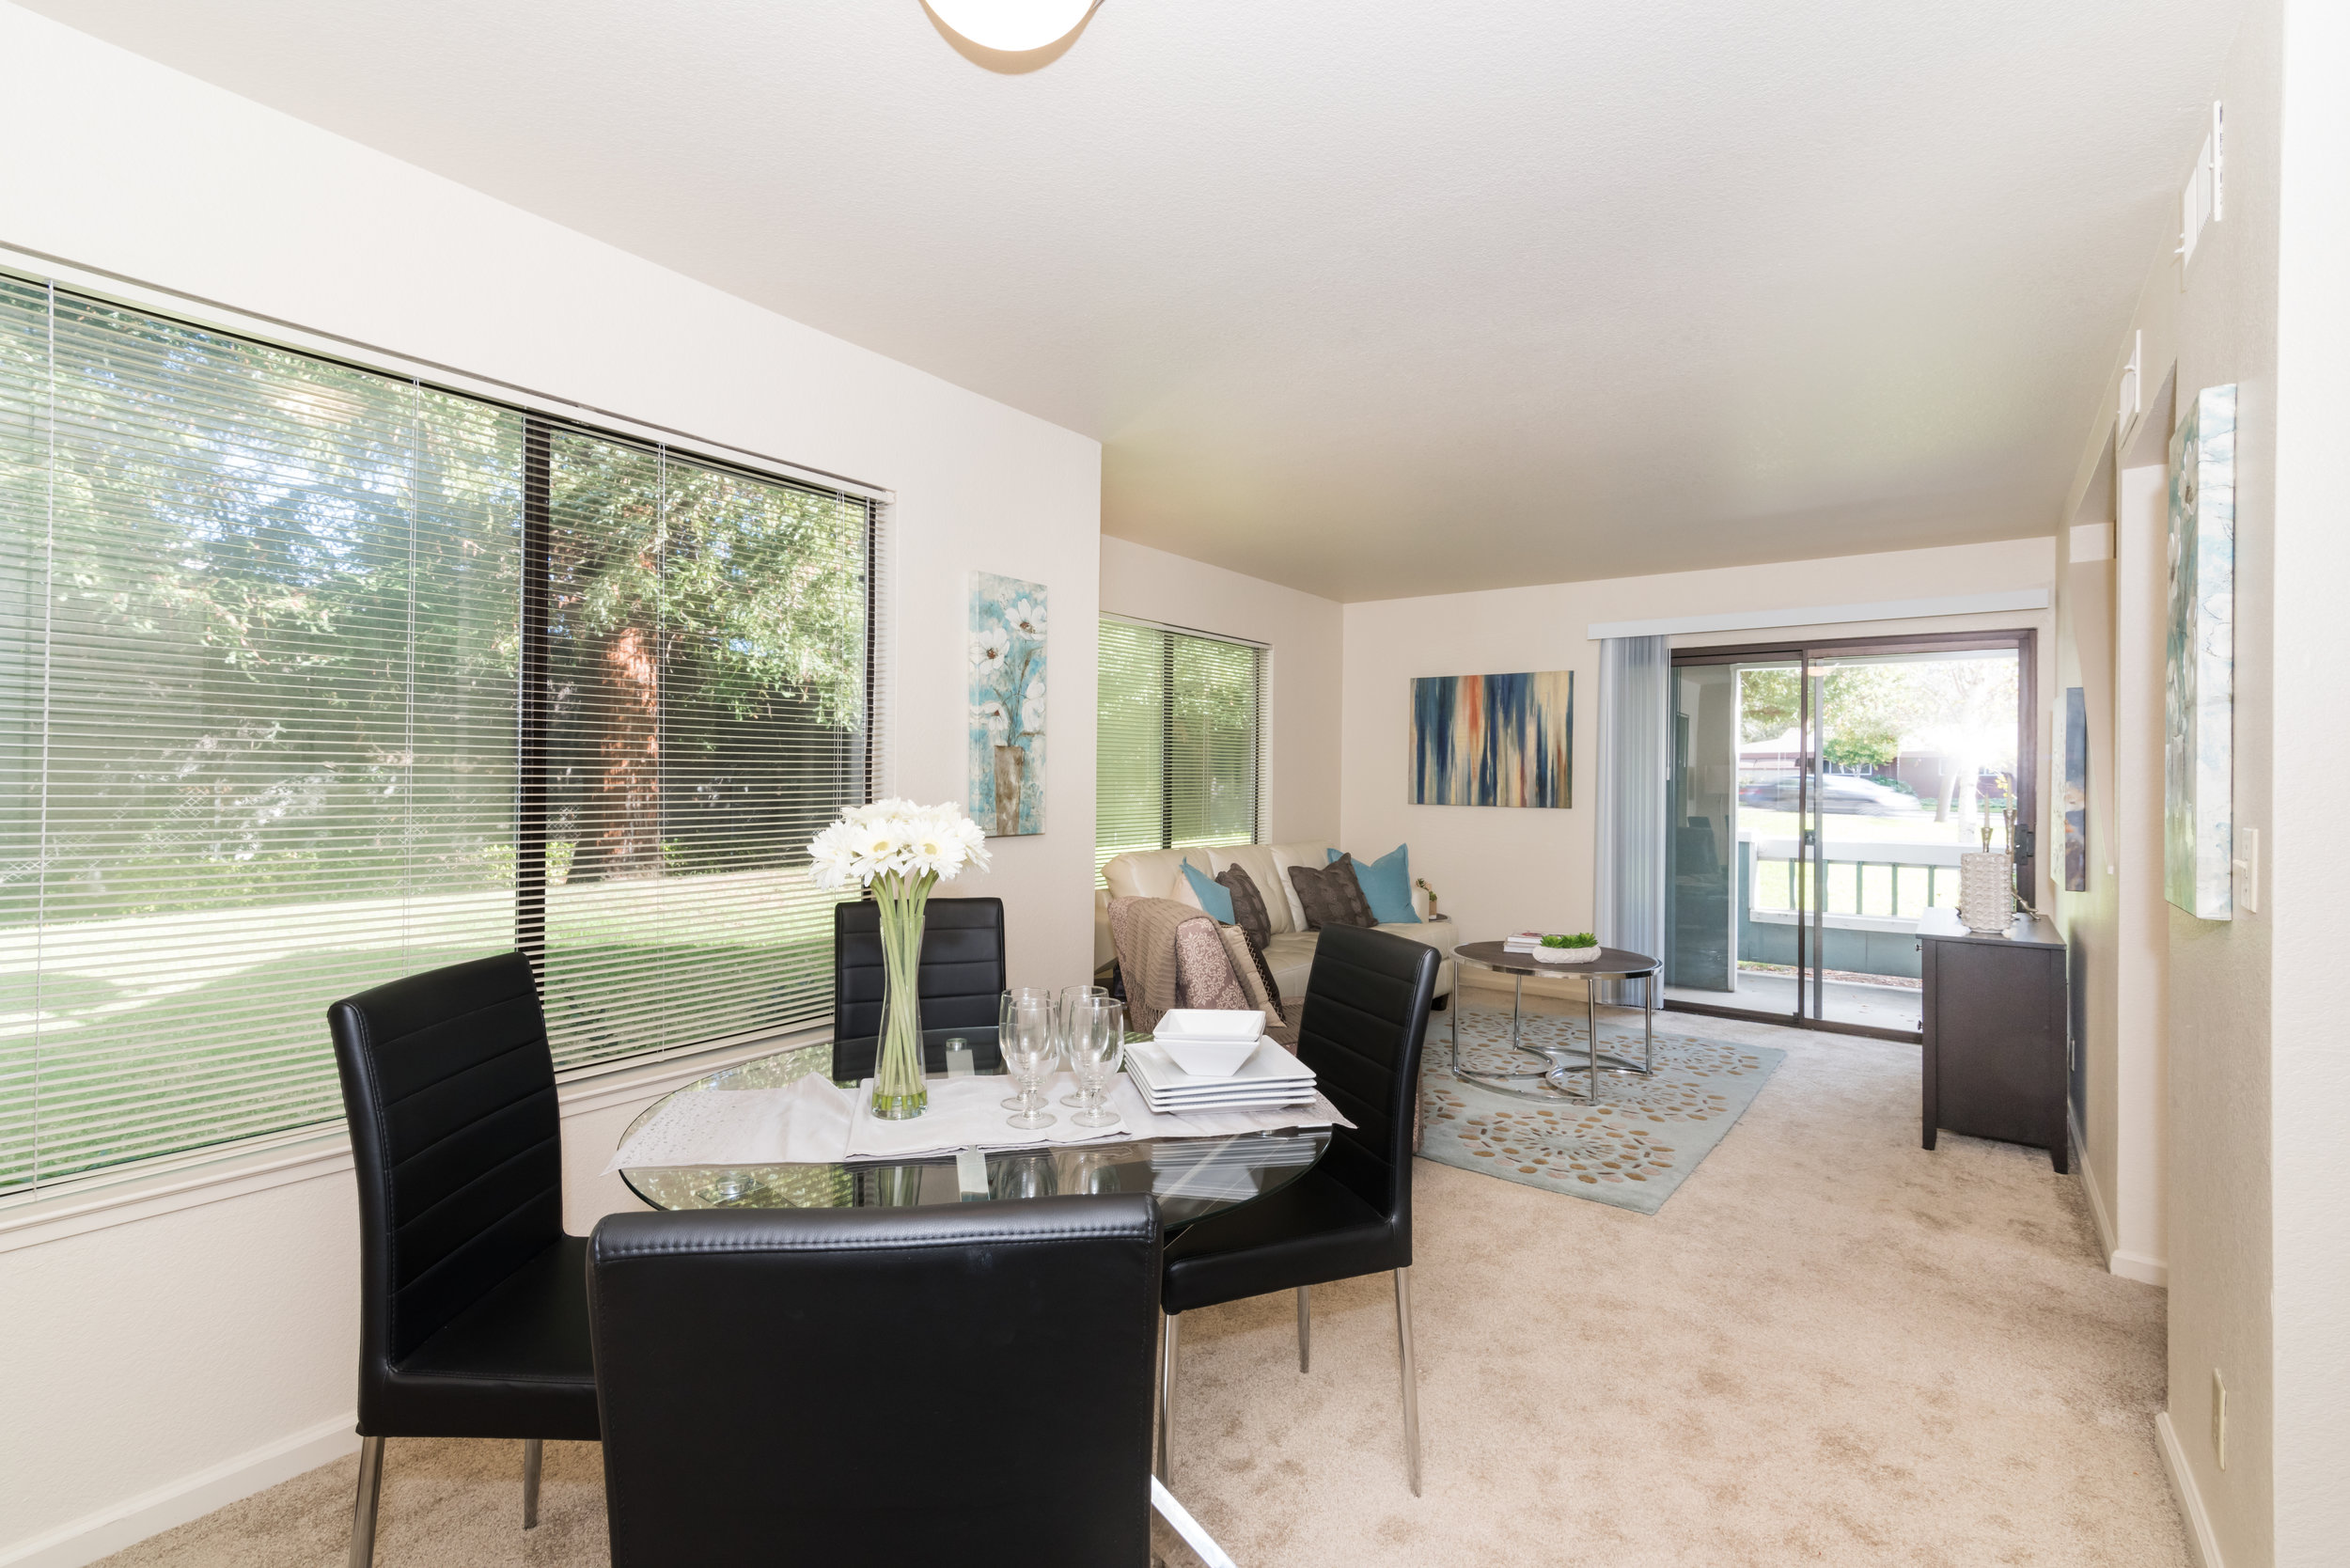 Apartment Dining Room and Family Room